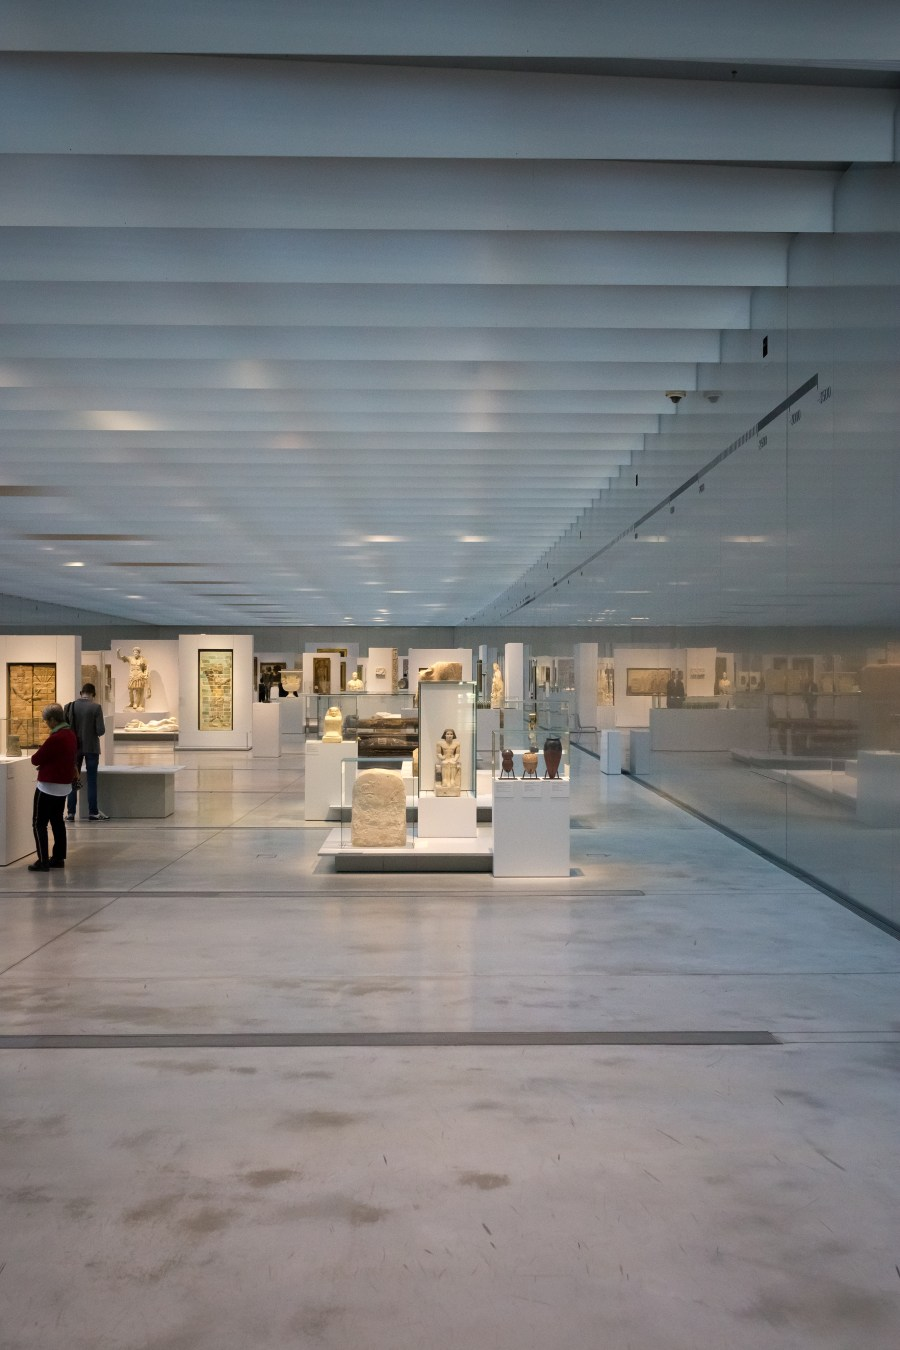 blogtrip-enfranceaussi-enfrancealens-musee-galerie-exposition-oeuvres-grece-egypte